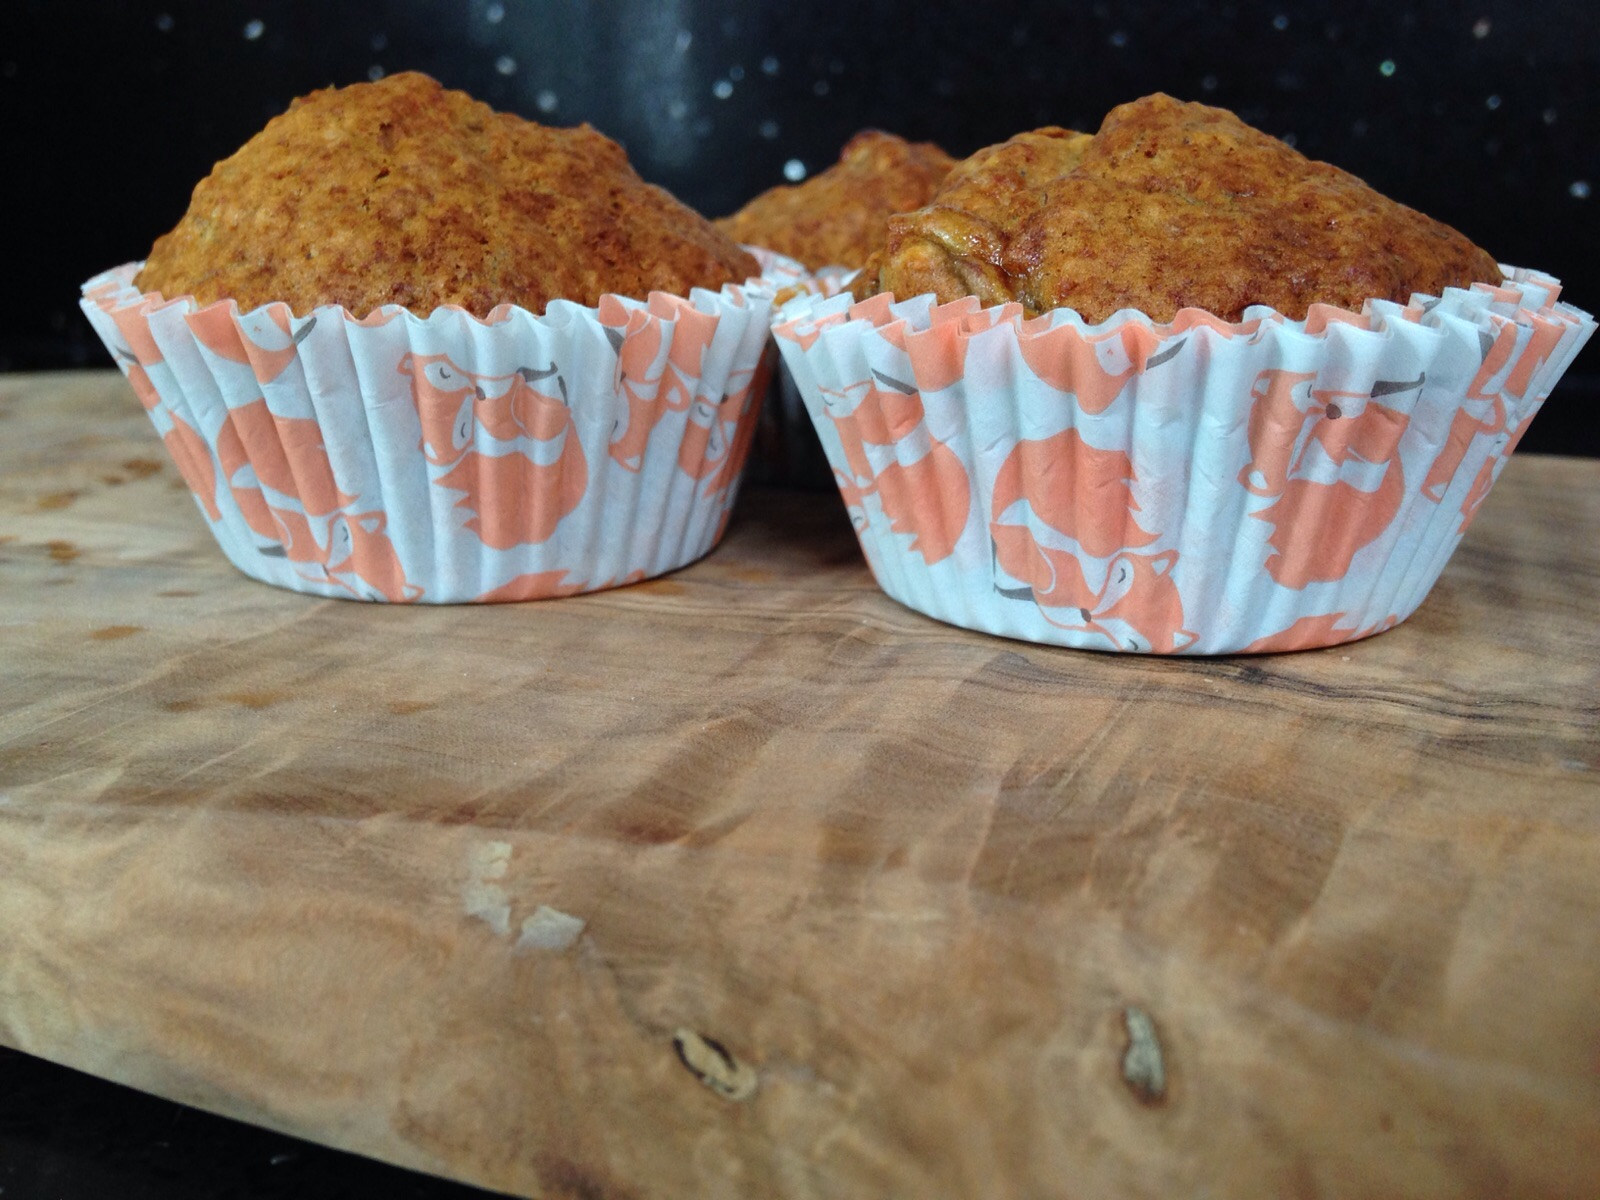 The cupcake cases have foxes on them - so cool! From one of our parents :-)